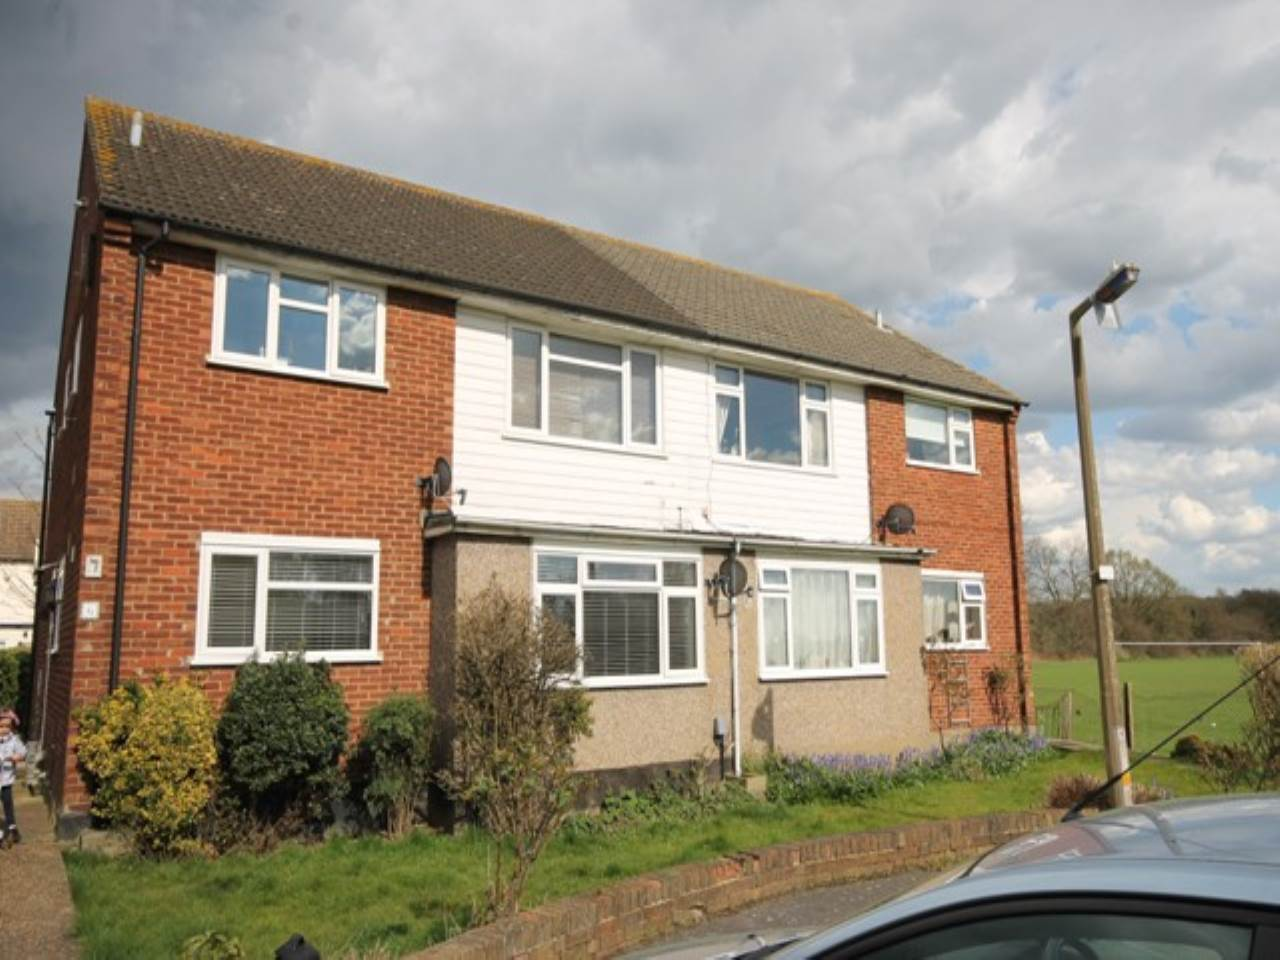 2 bed flat to rent in Loughton 0